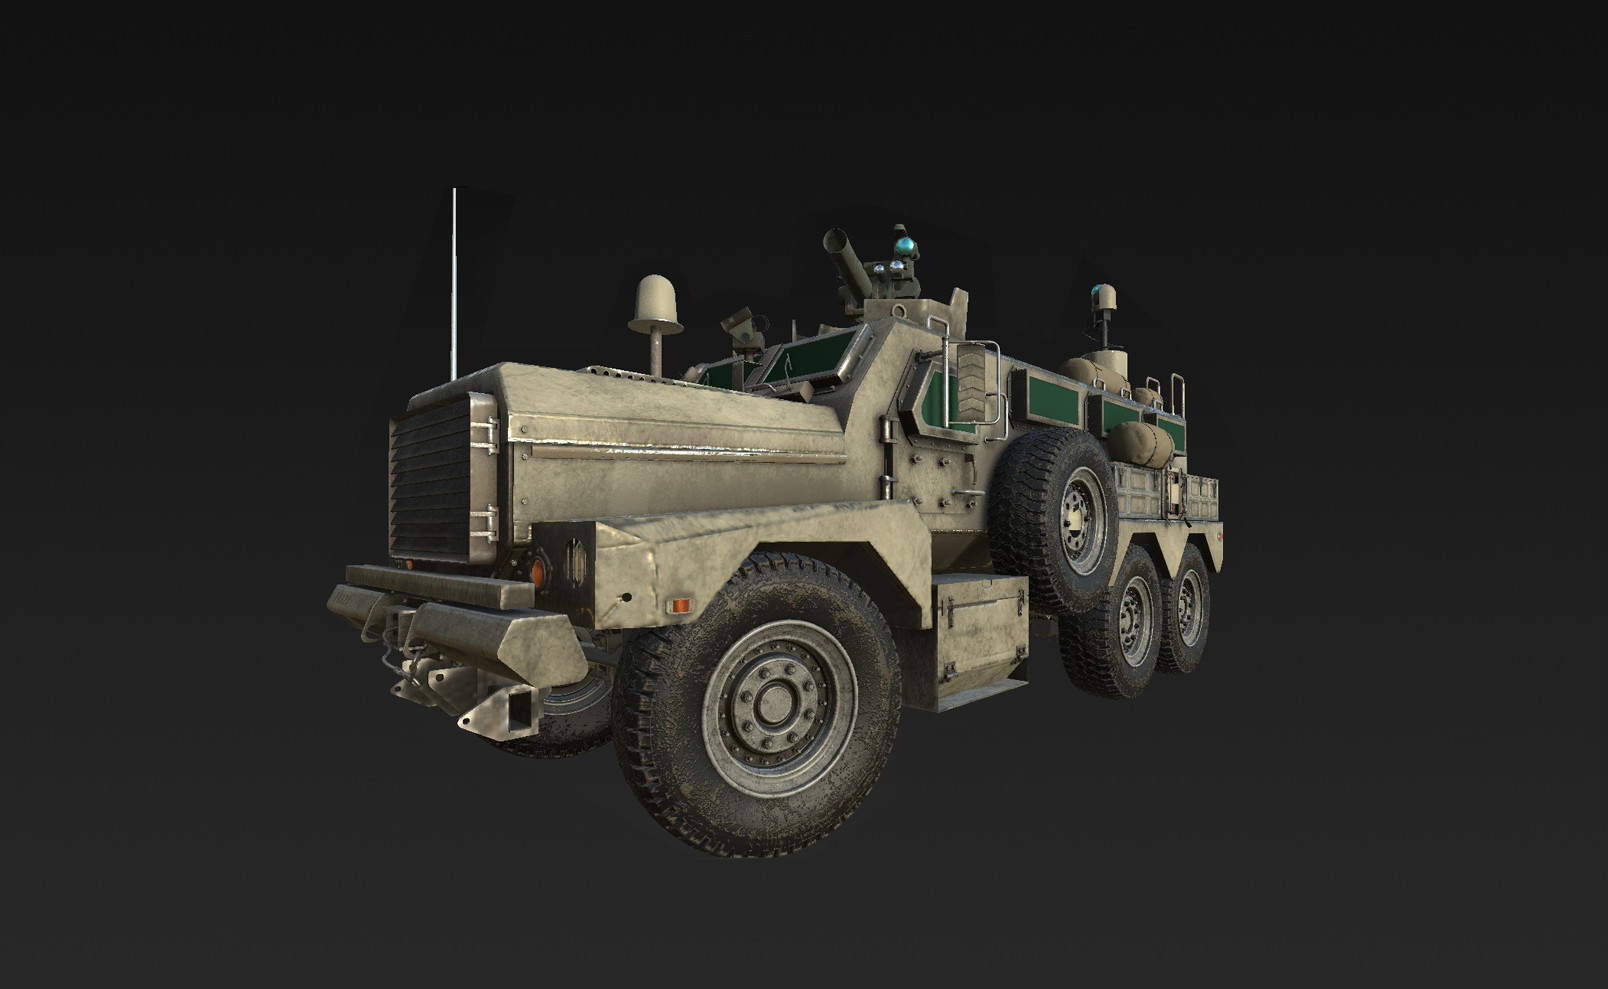 Ben harrison armored vehicle02